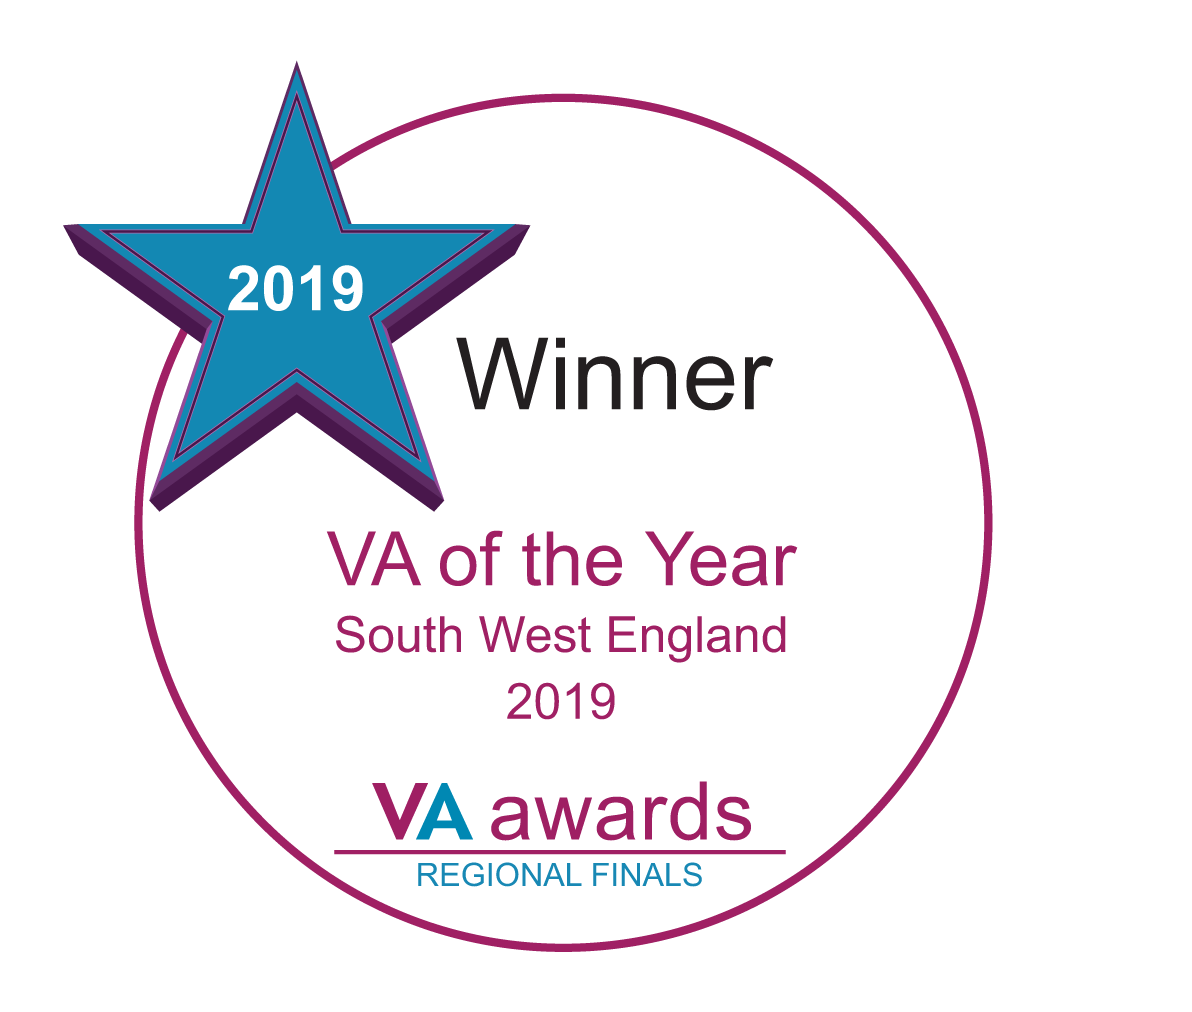 Winner South West England VA of the Year 2019